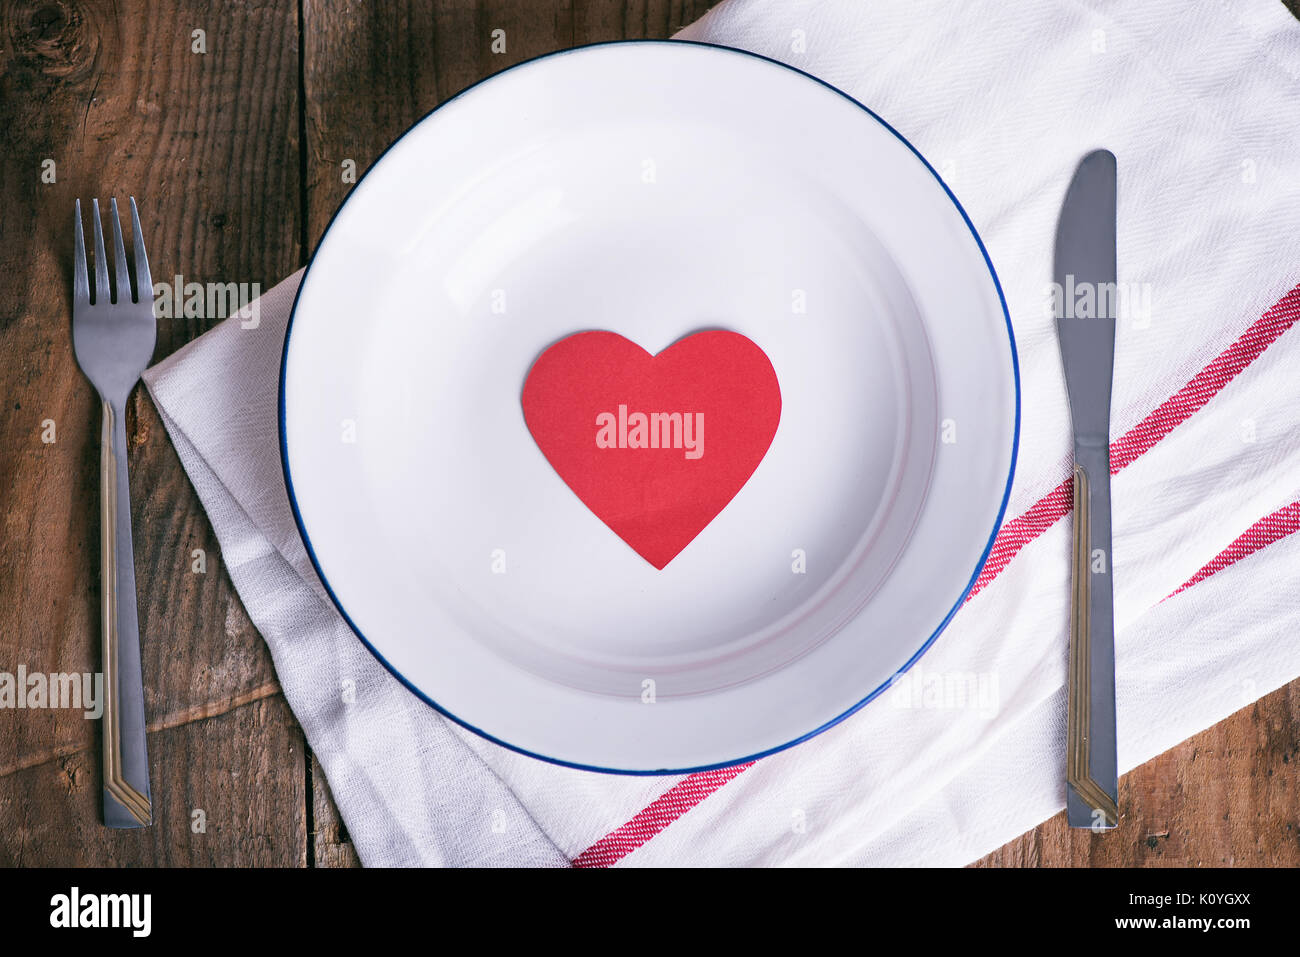 Concept diet and weight loss. Empty plate with red paper heart in the middle of the plate Stock Photo